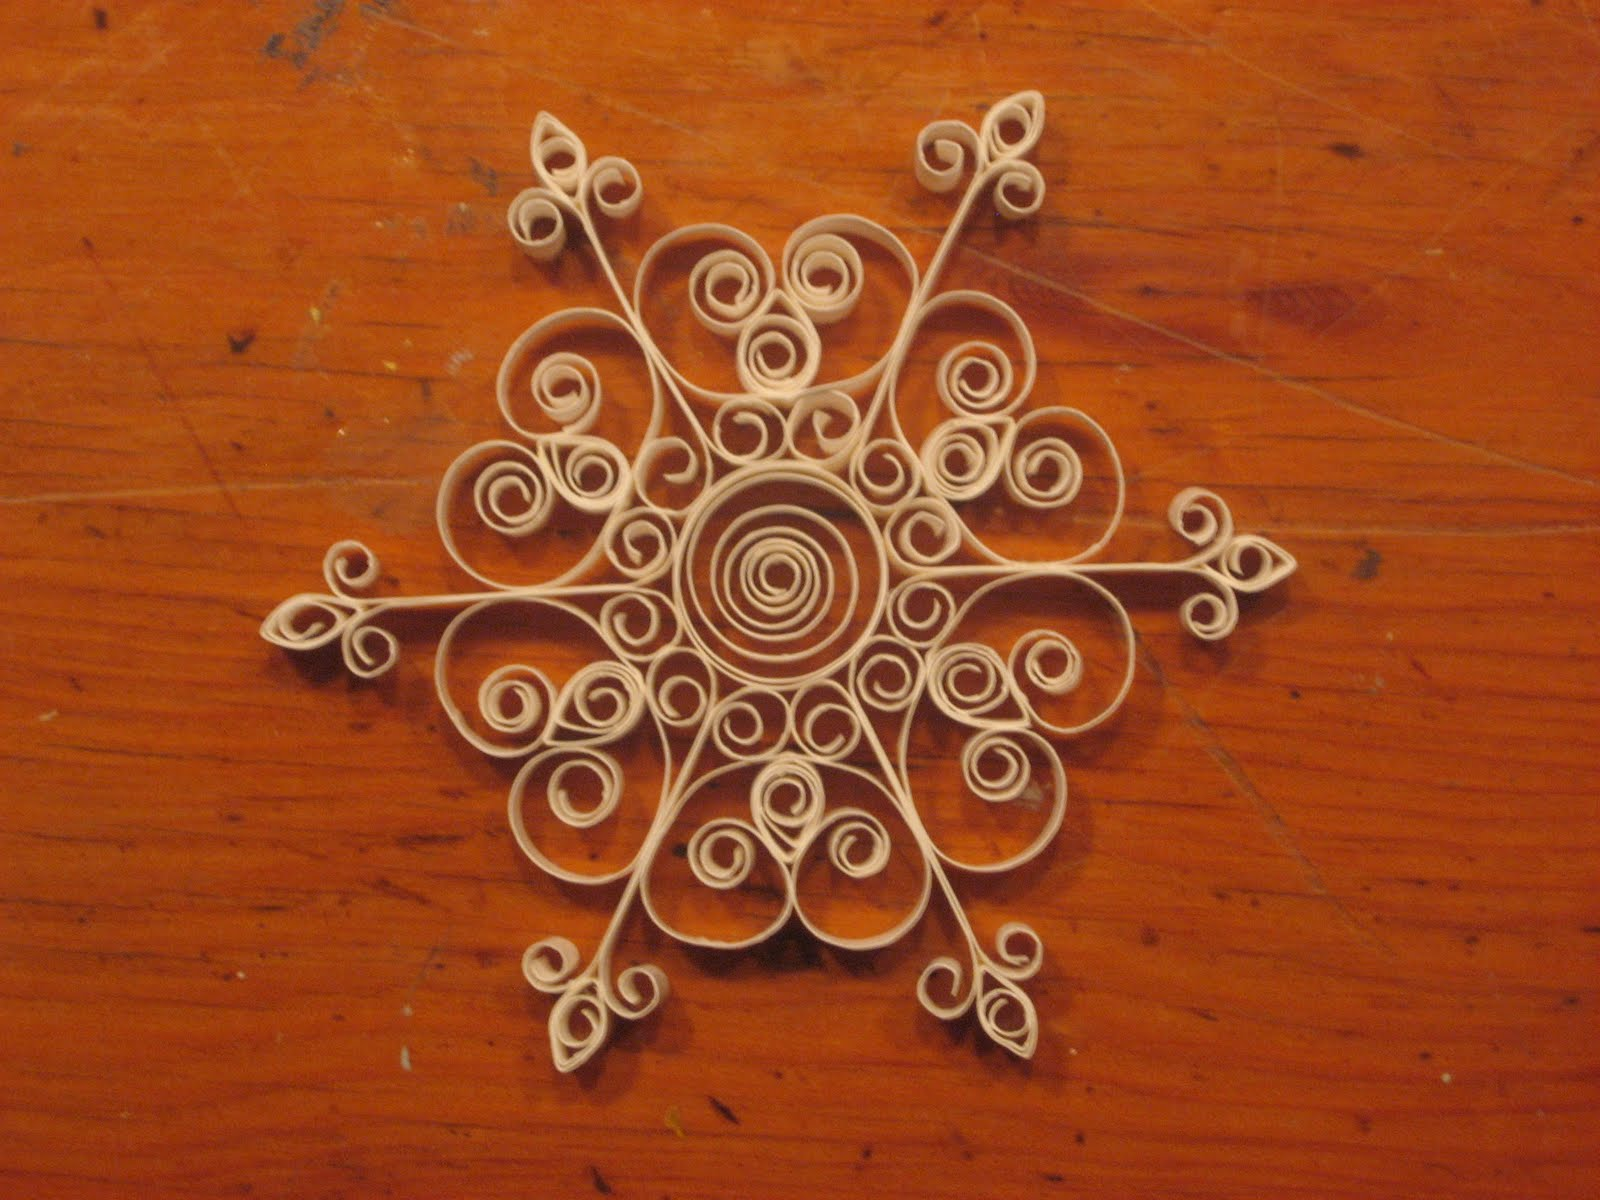 Quilling on pinterest snowflakes snowflake pattern and for Quilling patterns